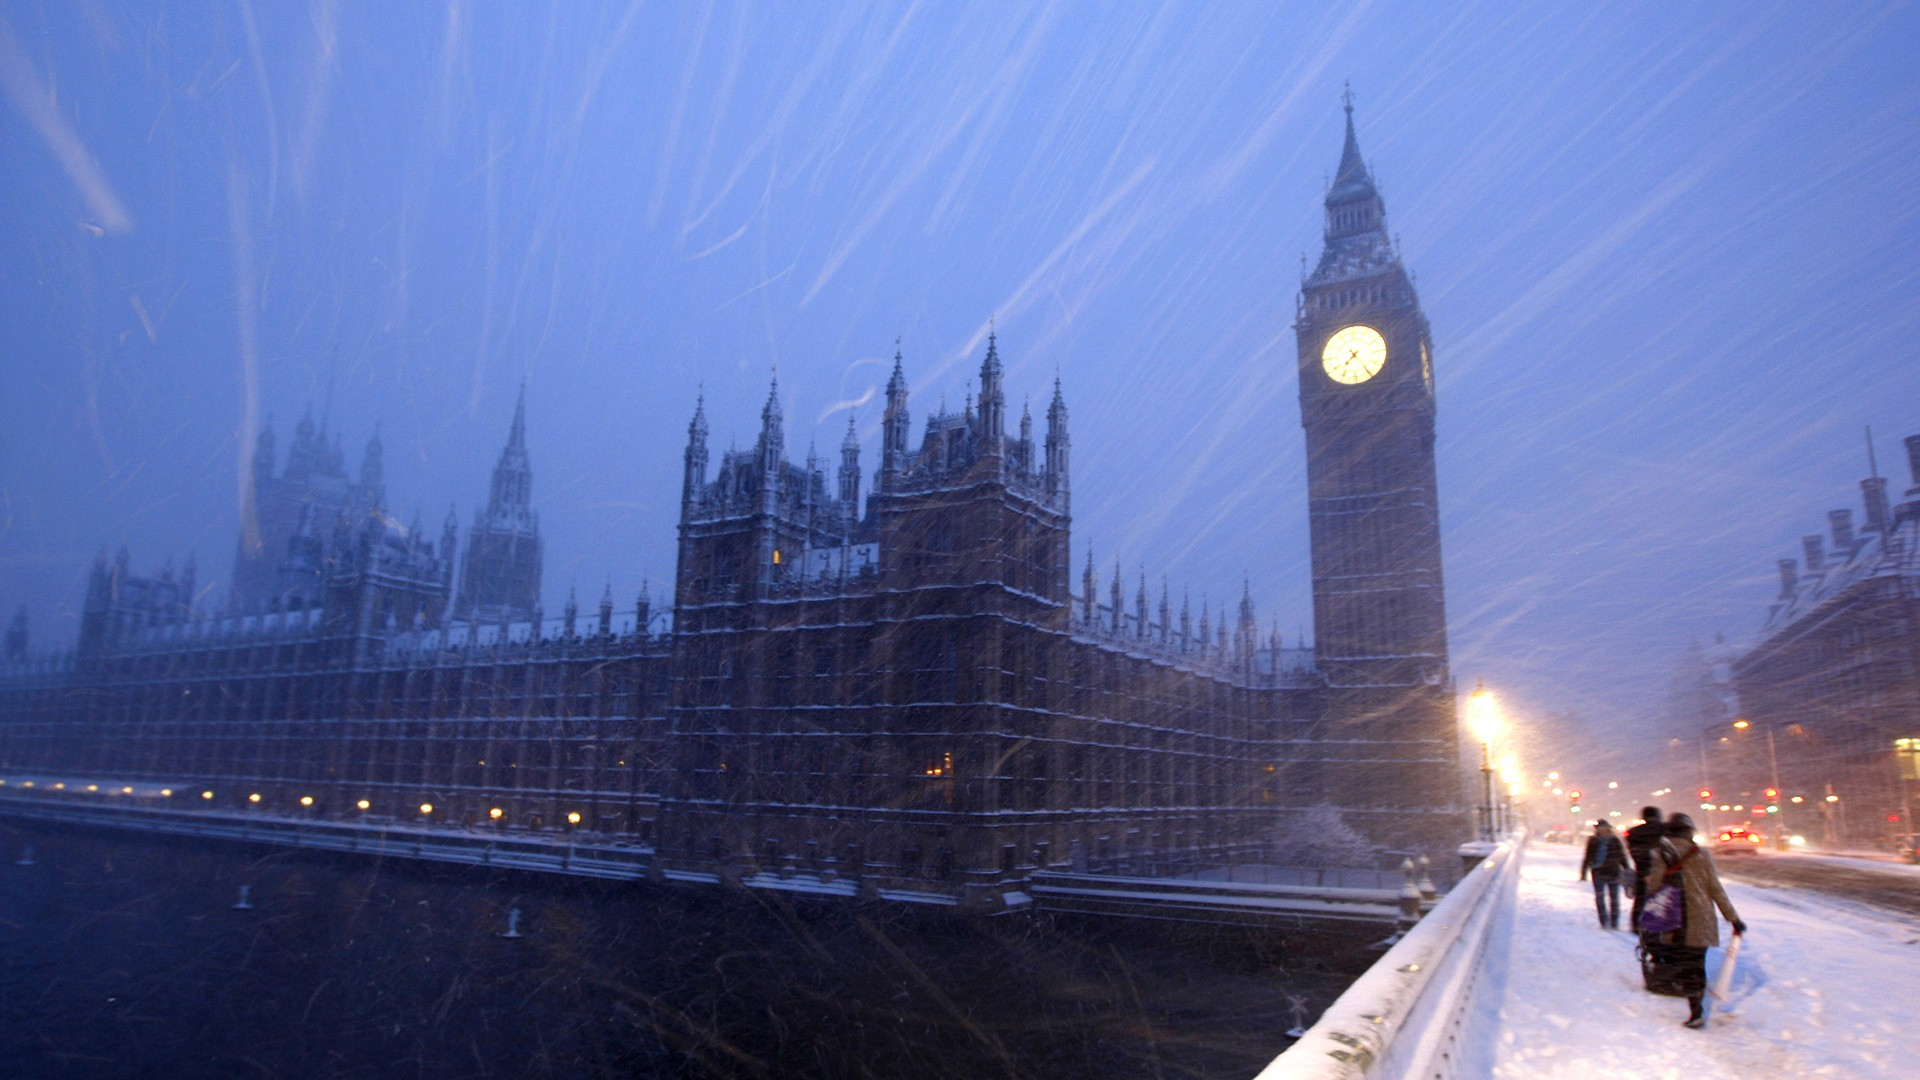 london snow wallpaper 2015   Grasscloth Wallpaper 1920x1080